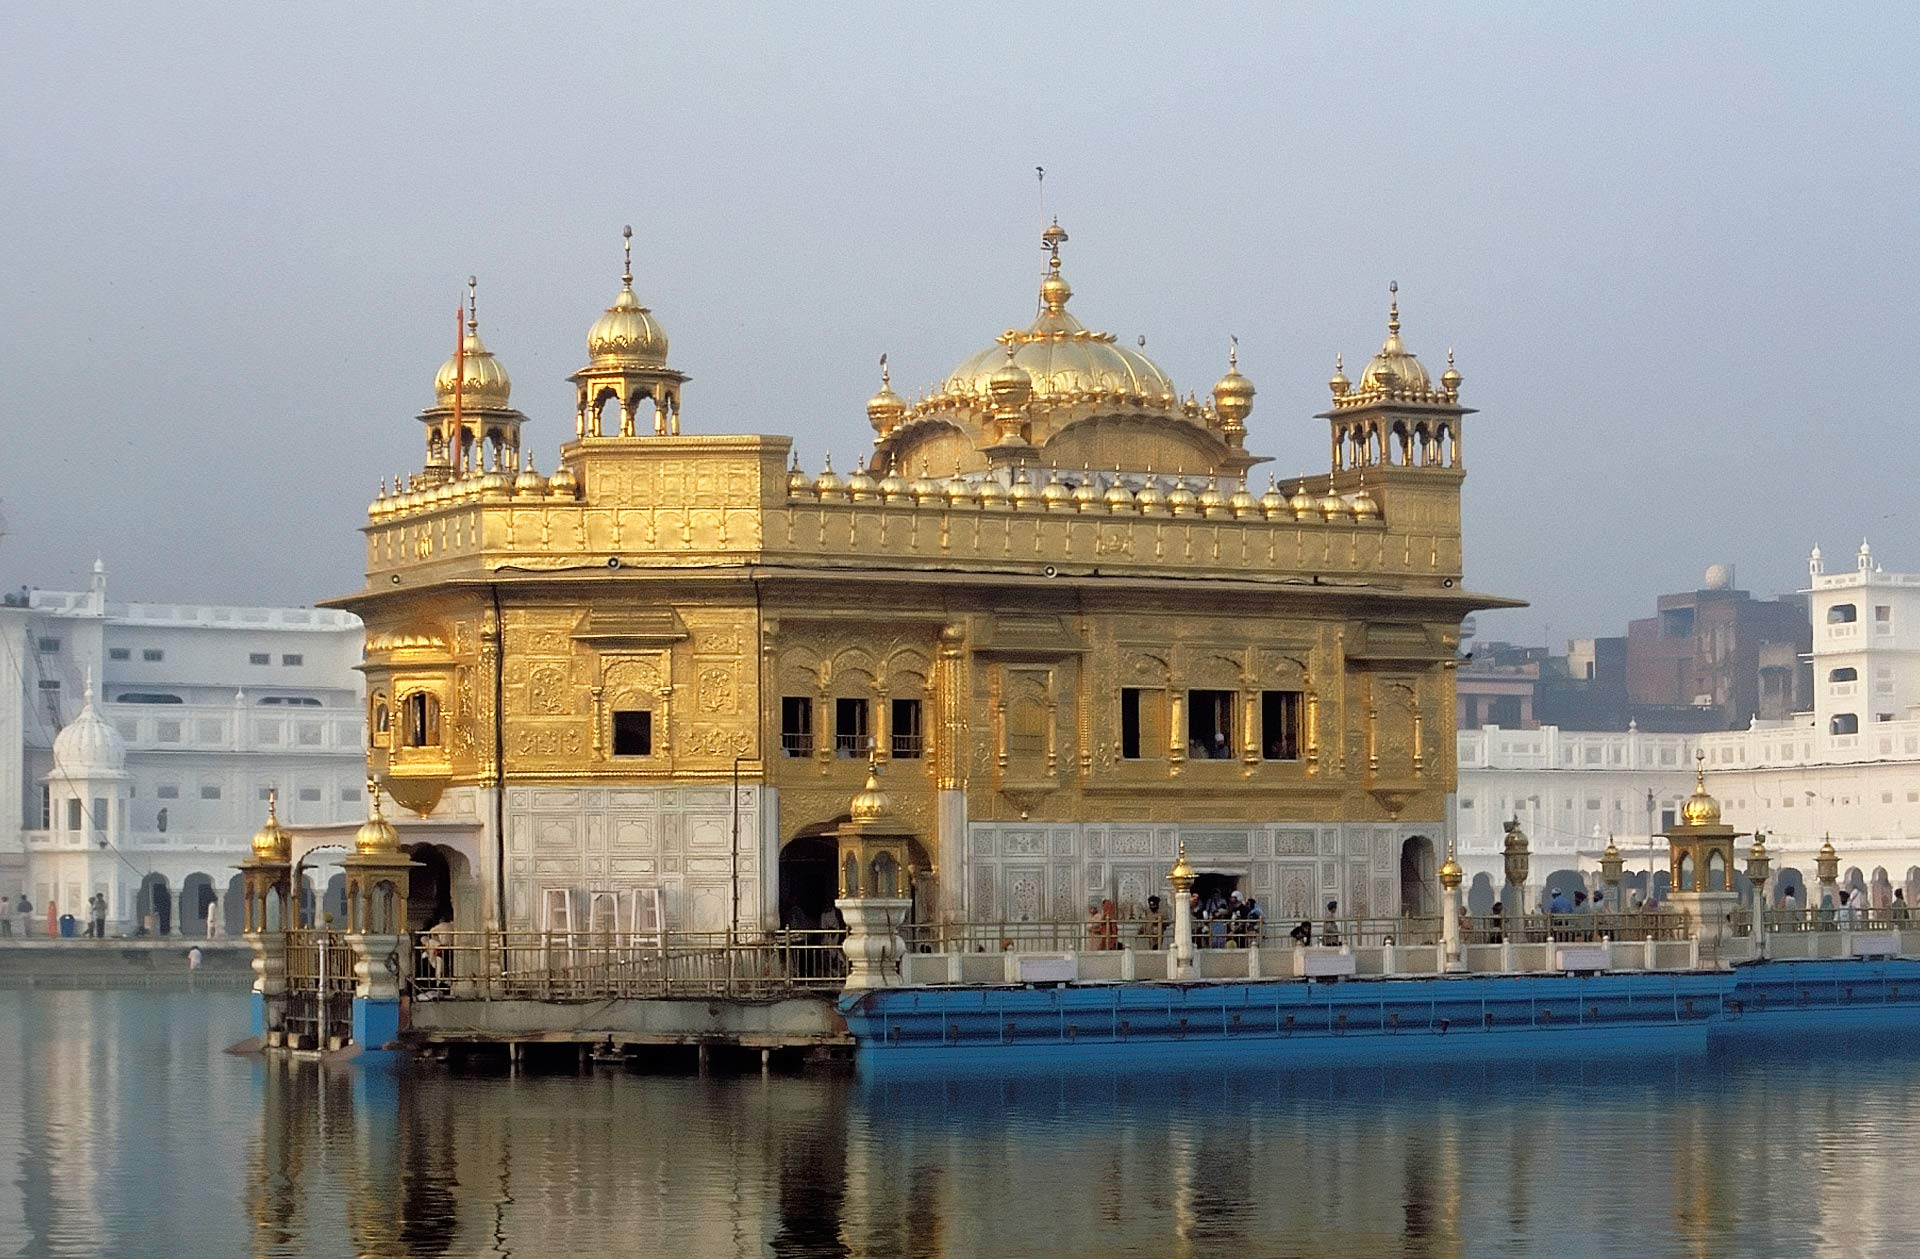 Hari Mandir Sahib (Golden Temple) with reflections in the Pool of Nectar, Amritsar, Punjab, India